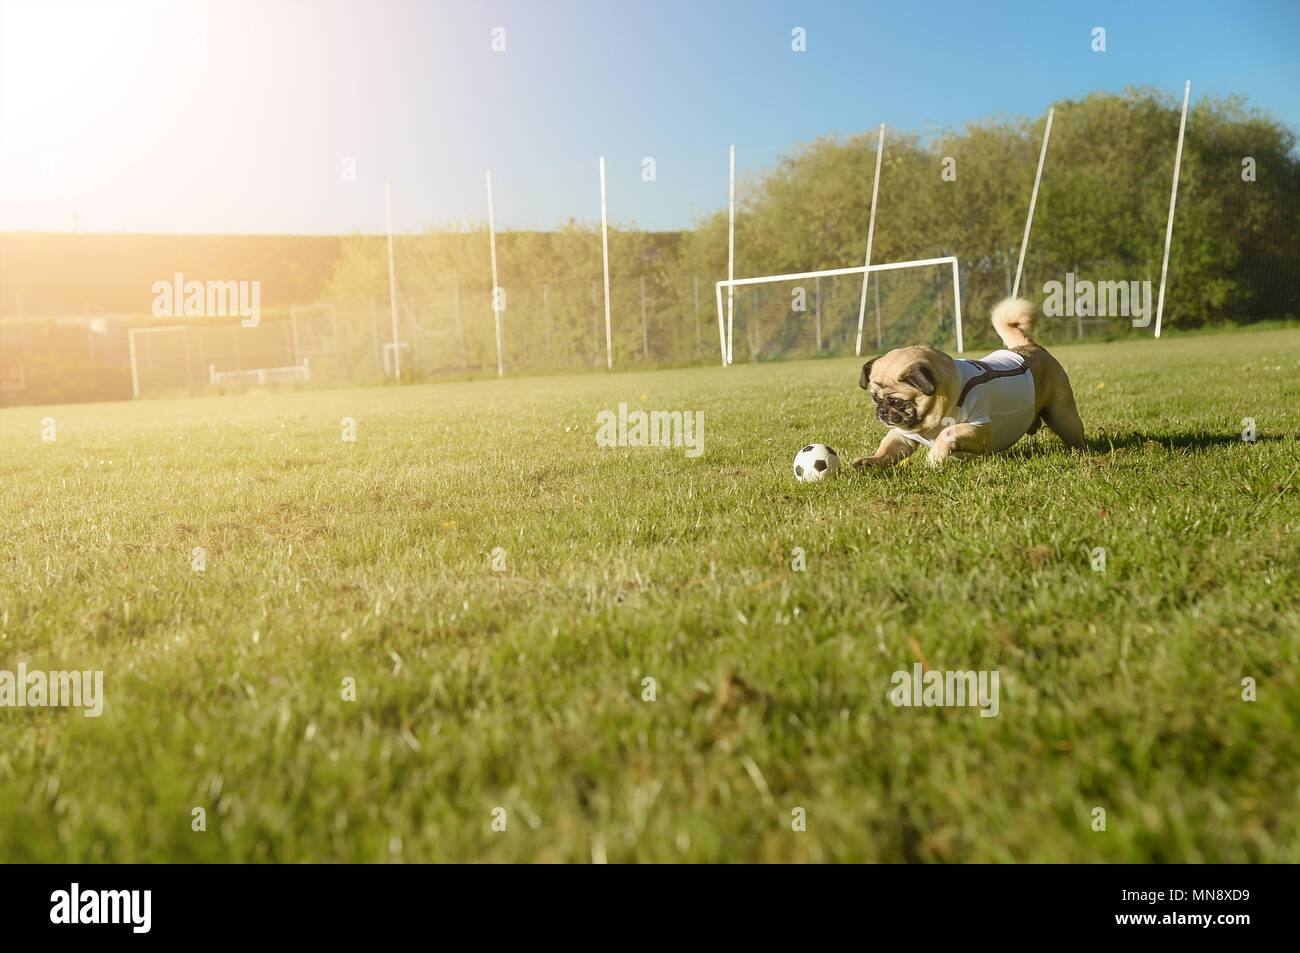 Little dog is running with a football over the football field. He rolls the ball. In the background you can see the goal. The dog is wearing a white T - Stock Image